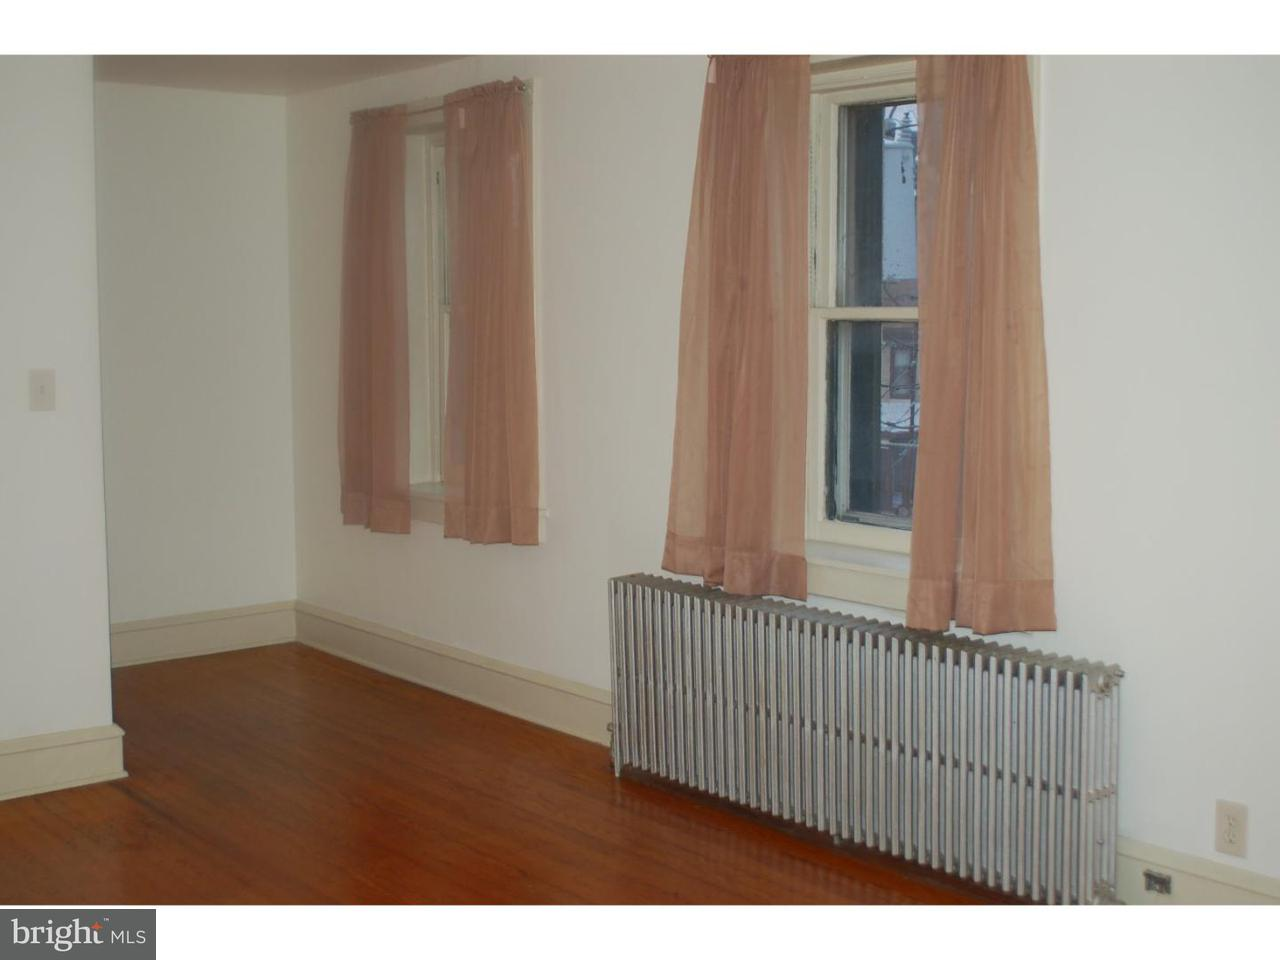 Additional photo for property listing at 141 W BROADWAY  Salem, New Jersey 08079 United States